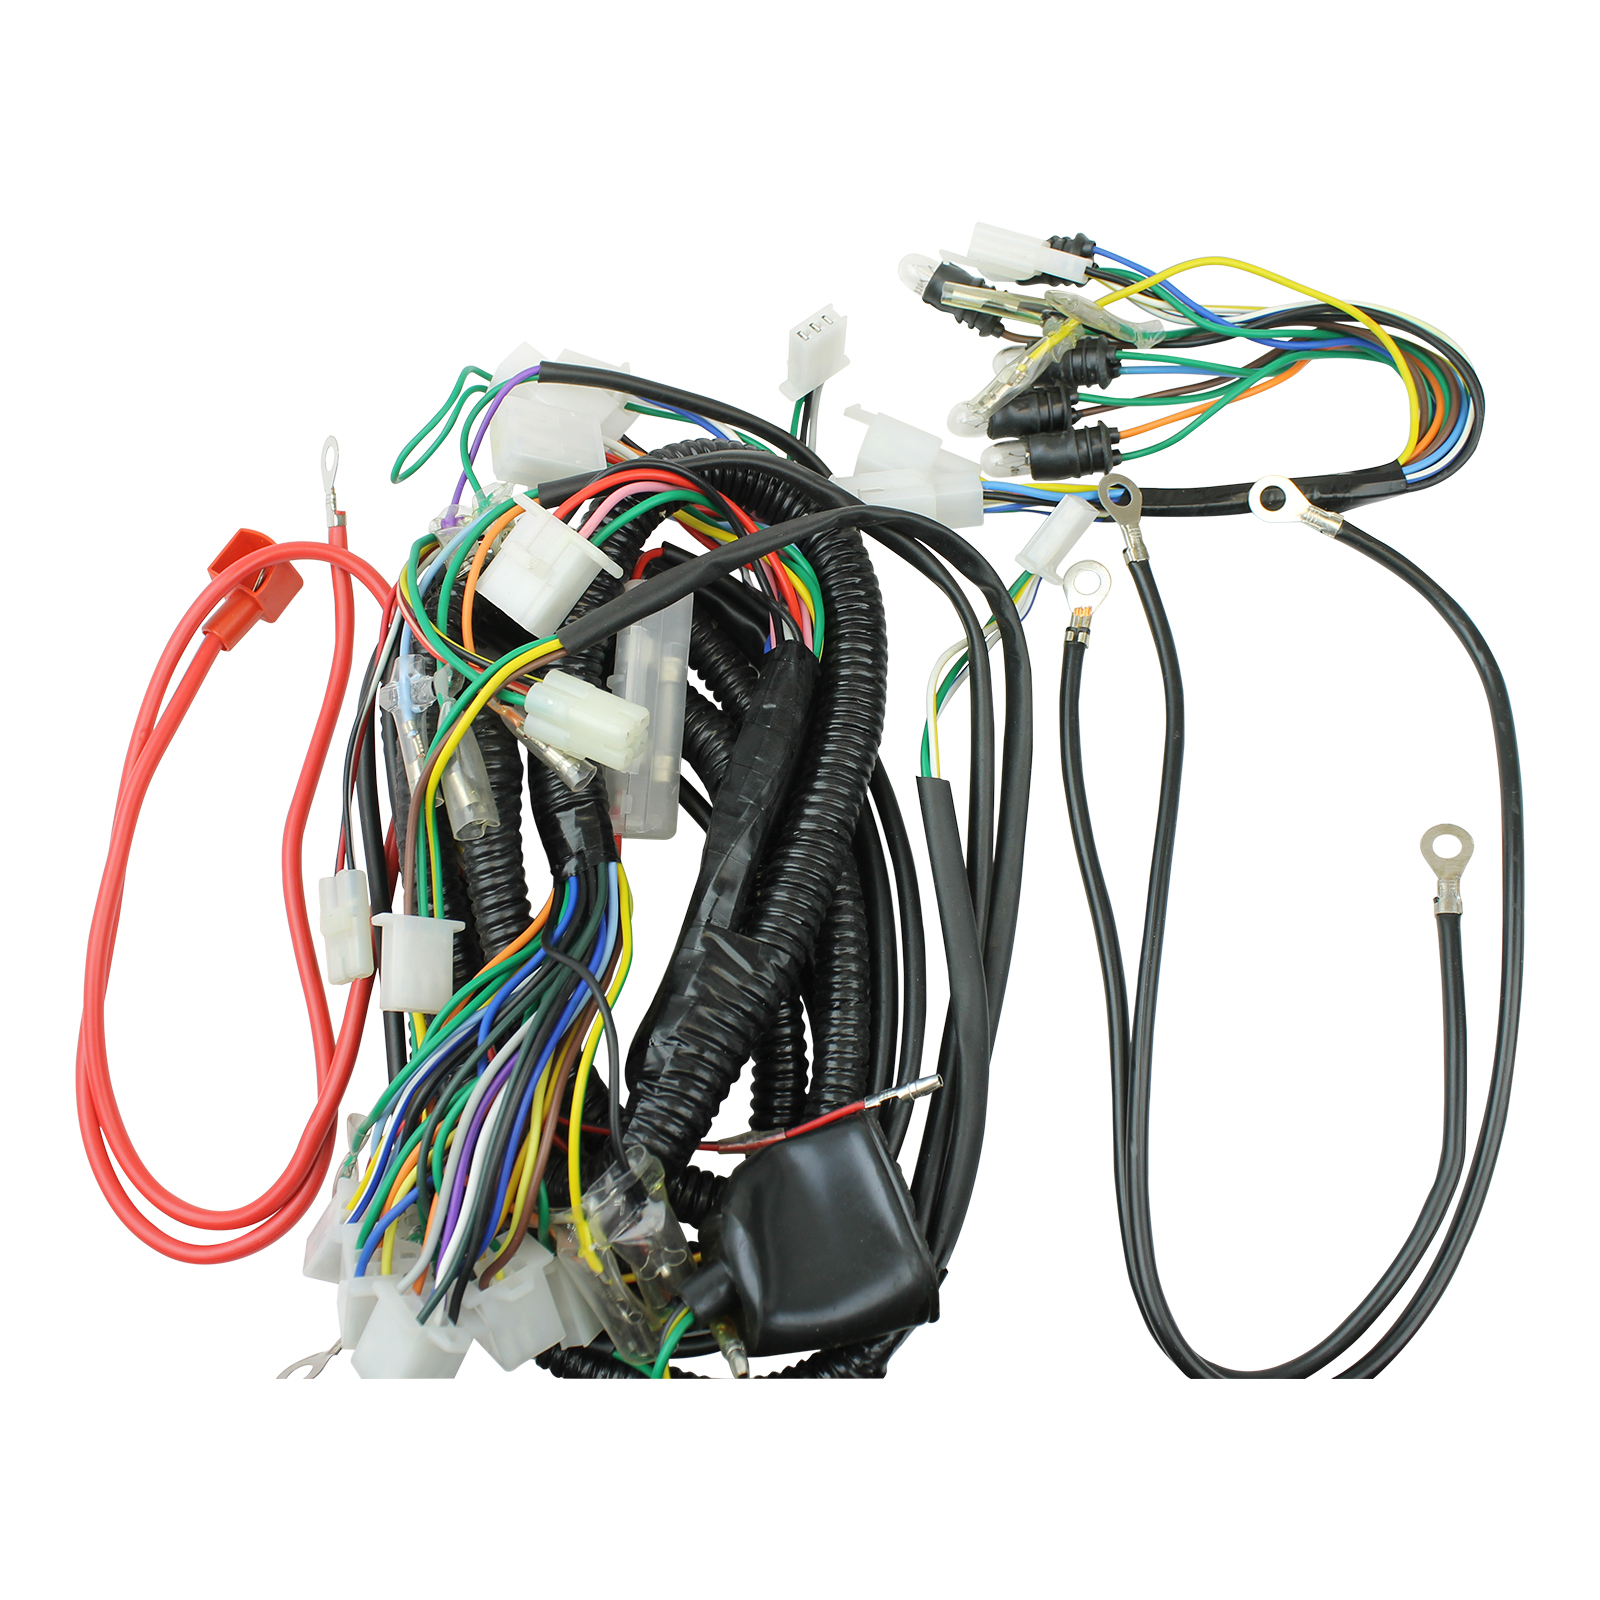 50cc Scooter Wiring Harness Motorcycle Wire Diagrams Cdi Diagram Vip Best 9